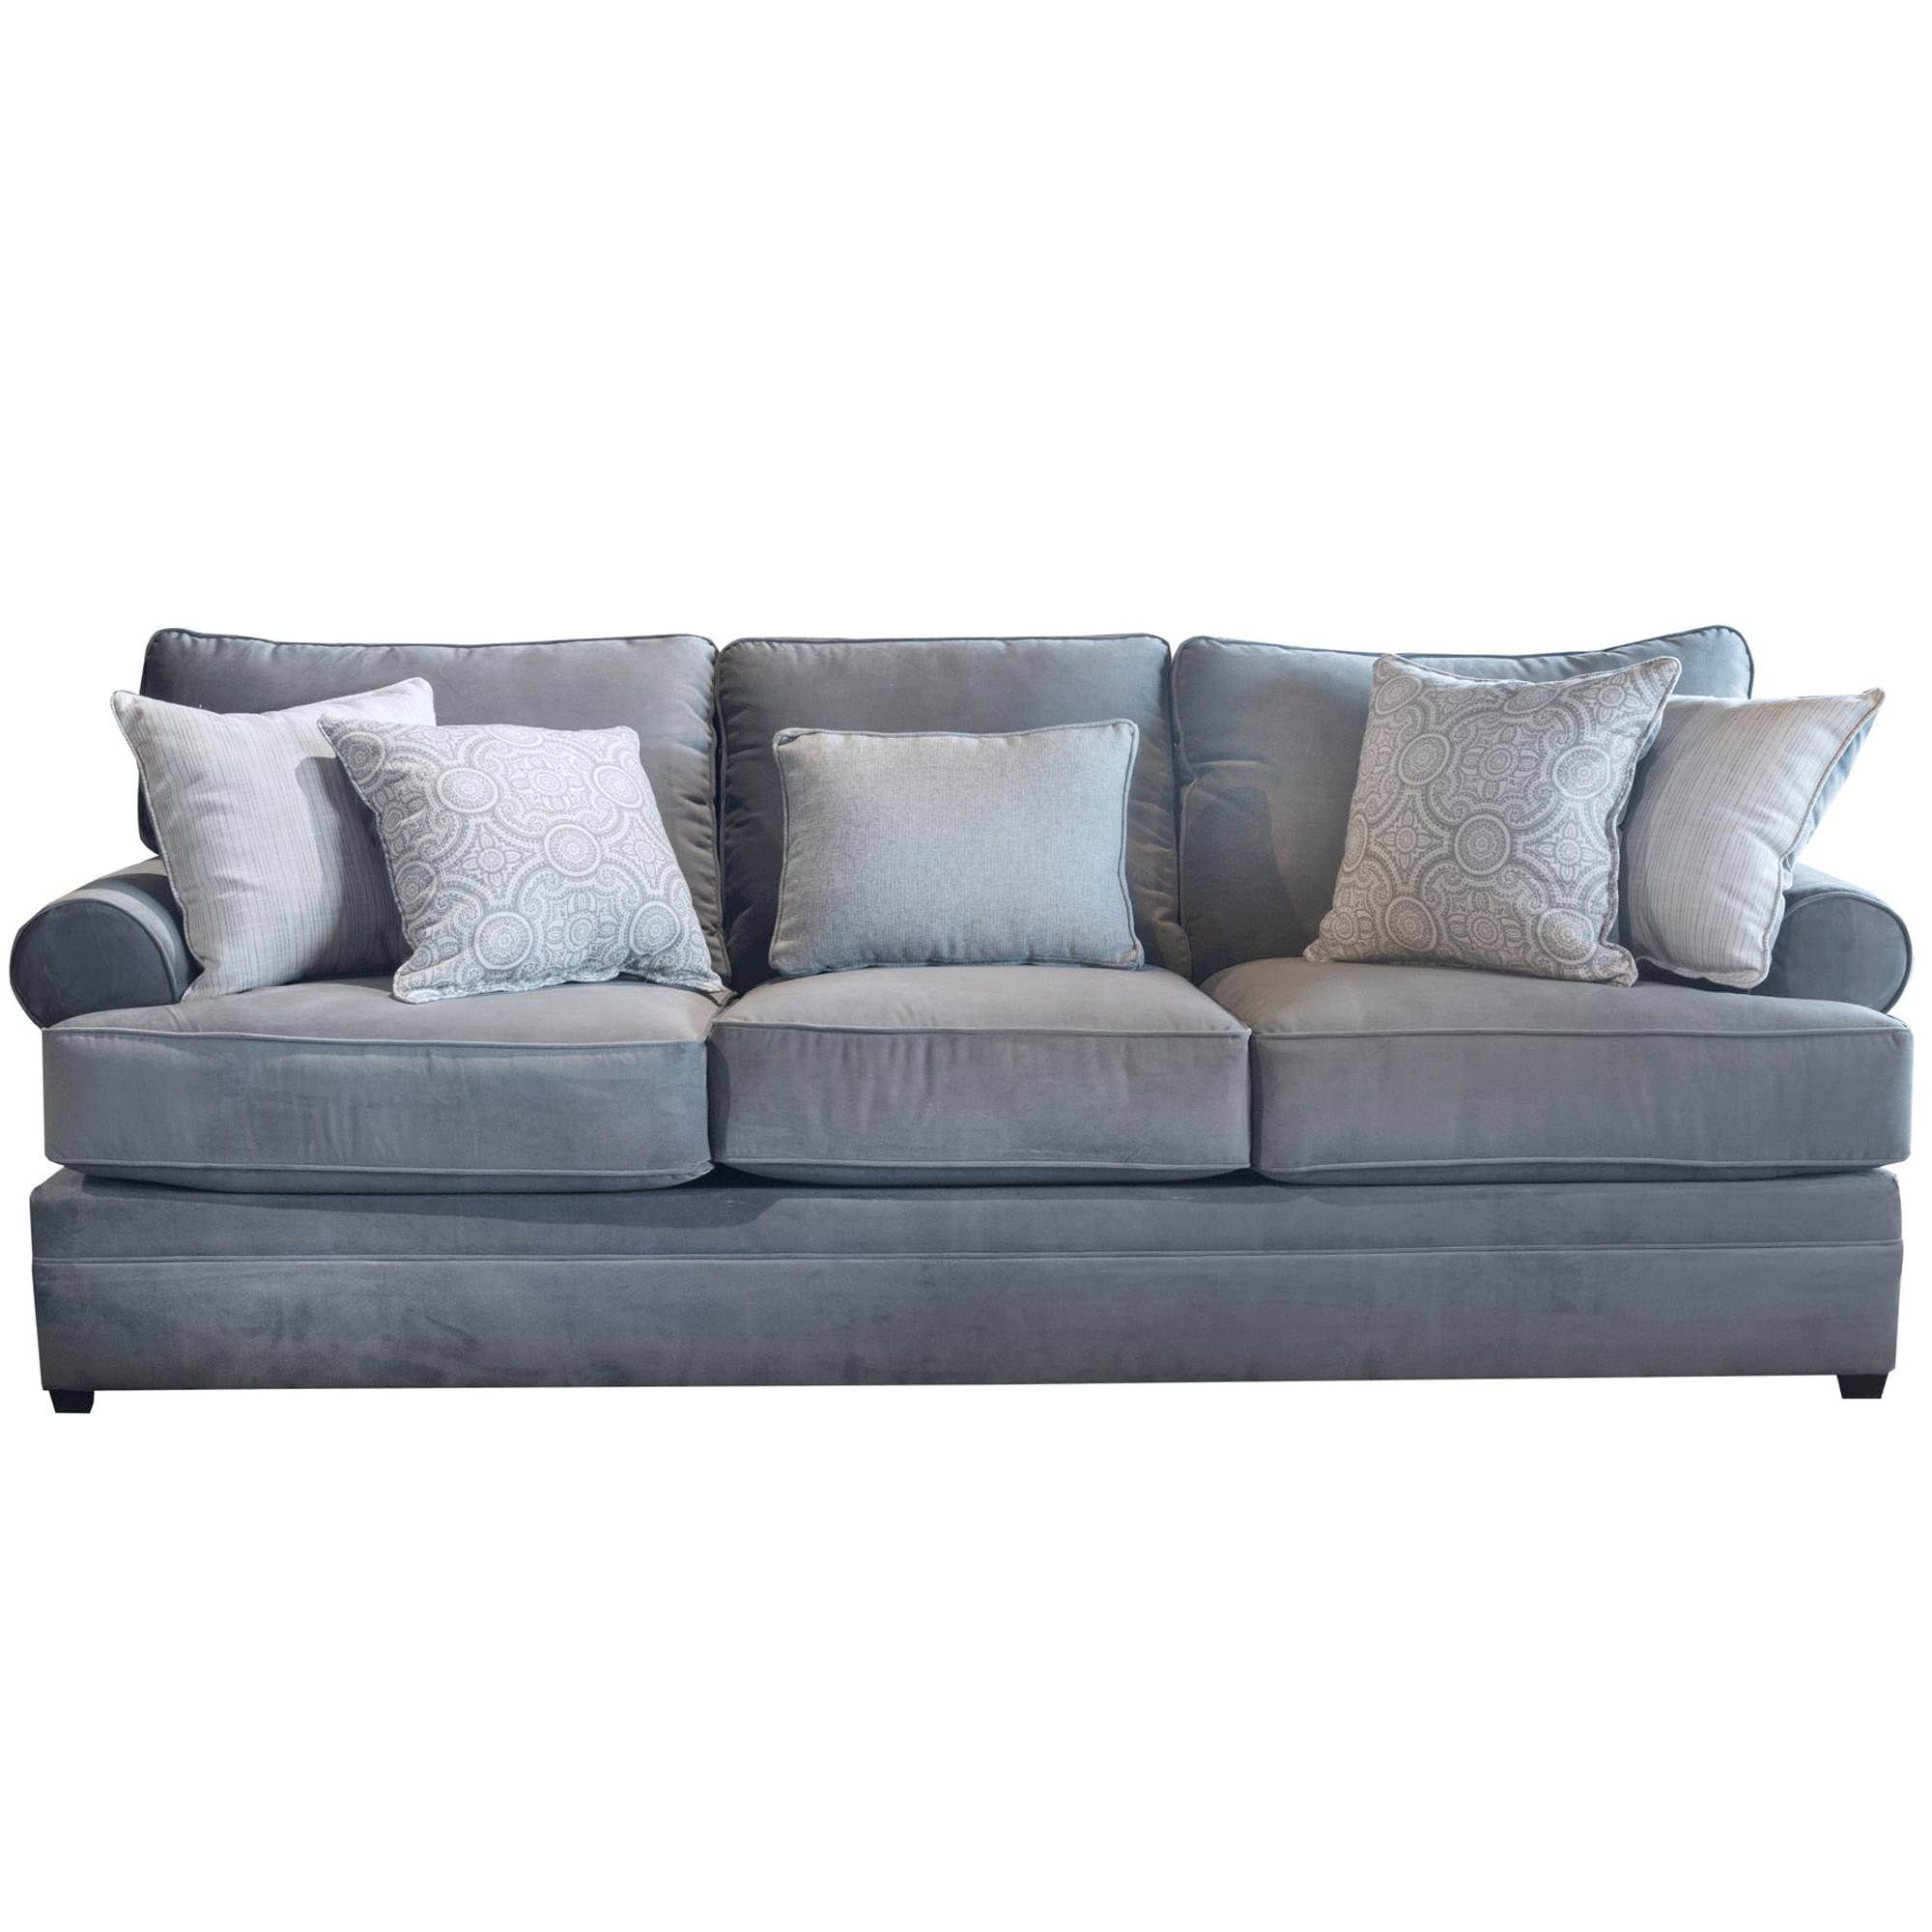 2017 Latest Backless Chaise Sofa